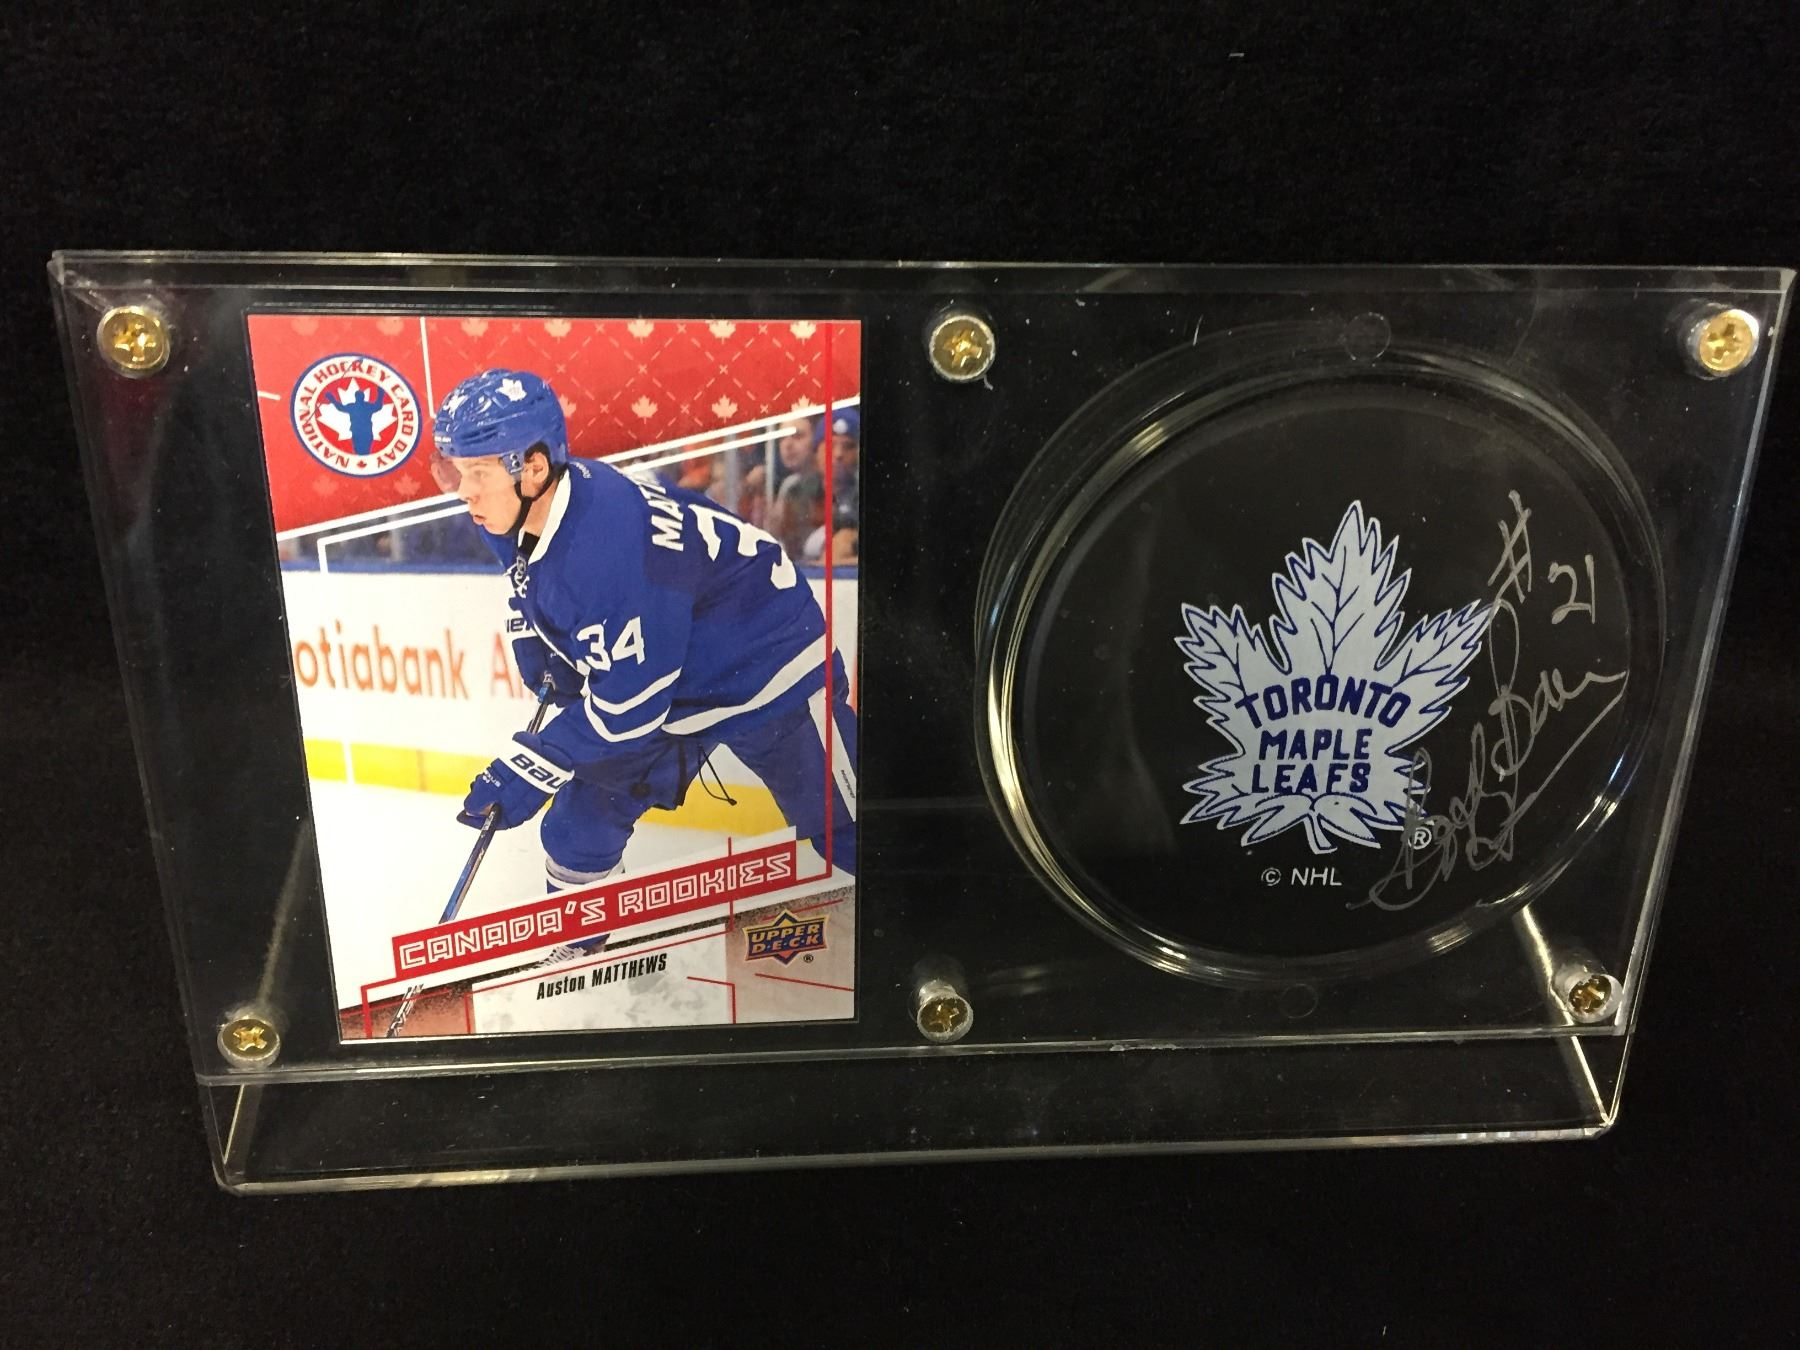 Auston Matthews Upper Deck Canadas Rookies Card W Bobby Baun Autographed Hockey Puck Display